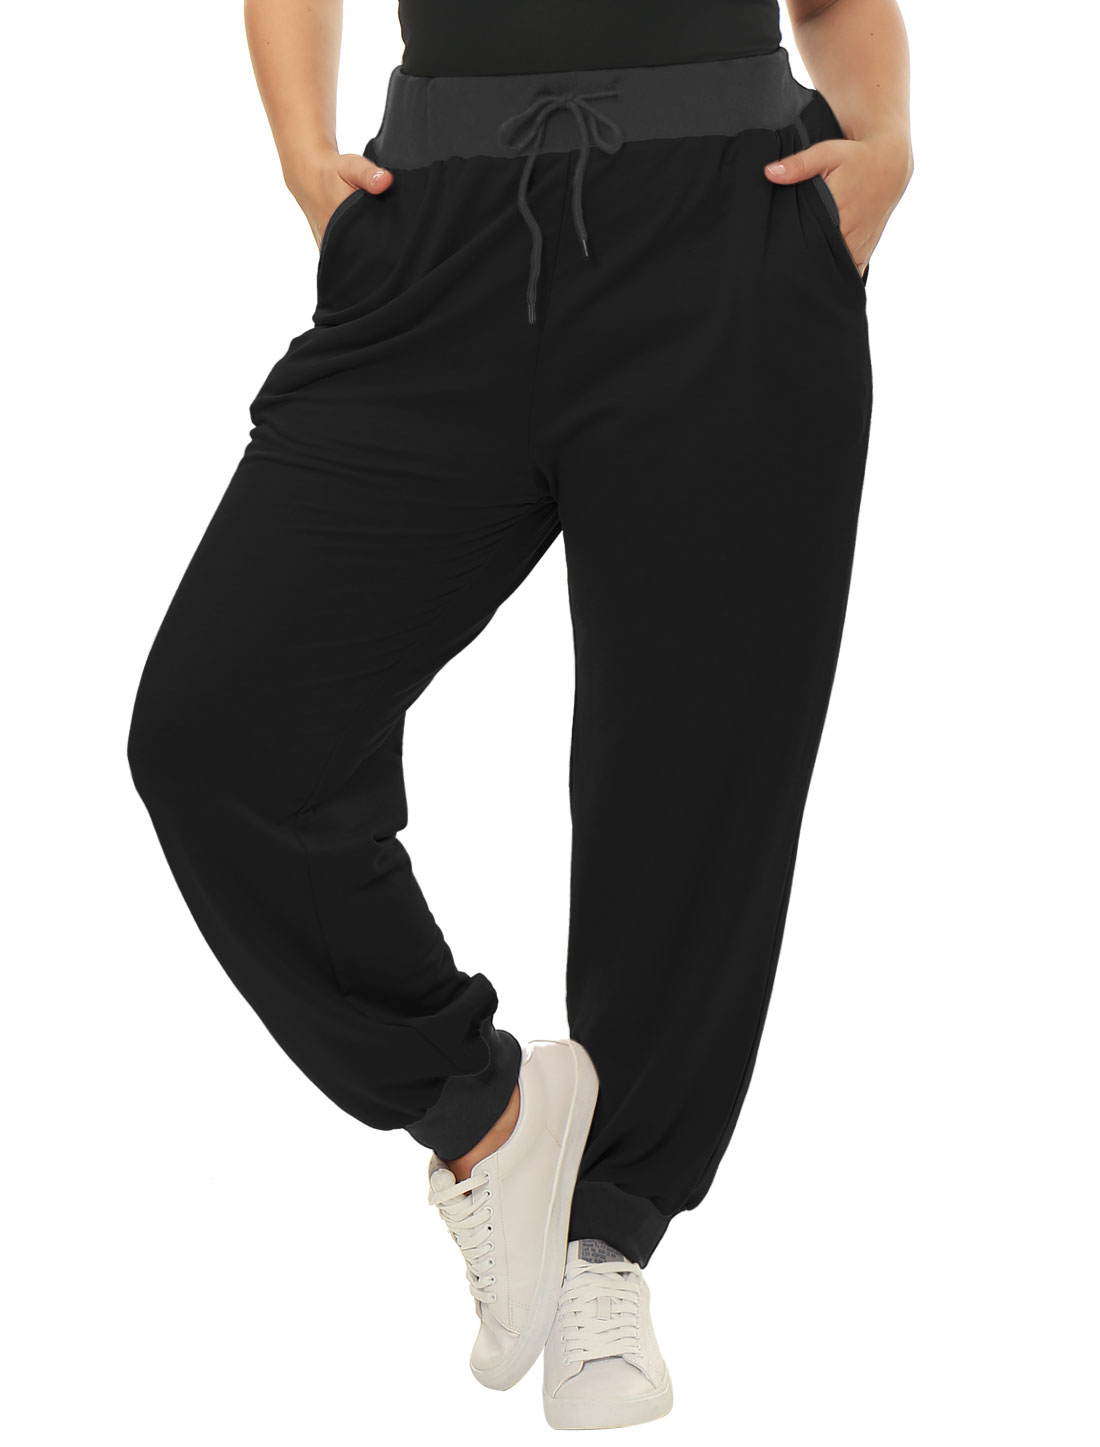 Women Plus Size Drawstring Waist Contrast Color Jogger Pants Black 3X